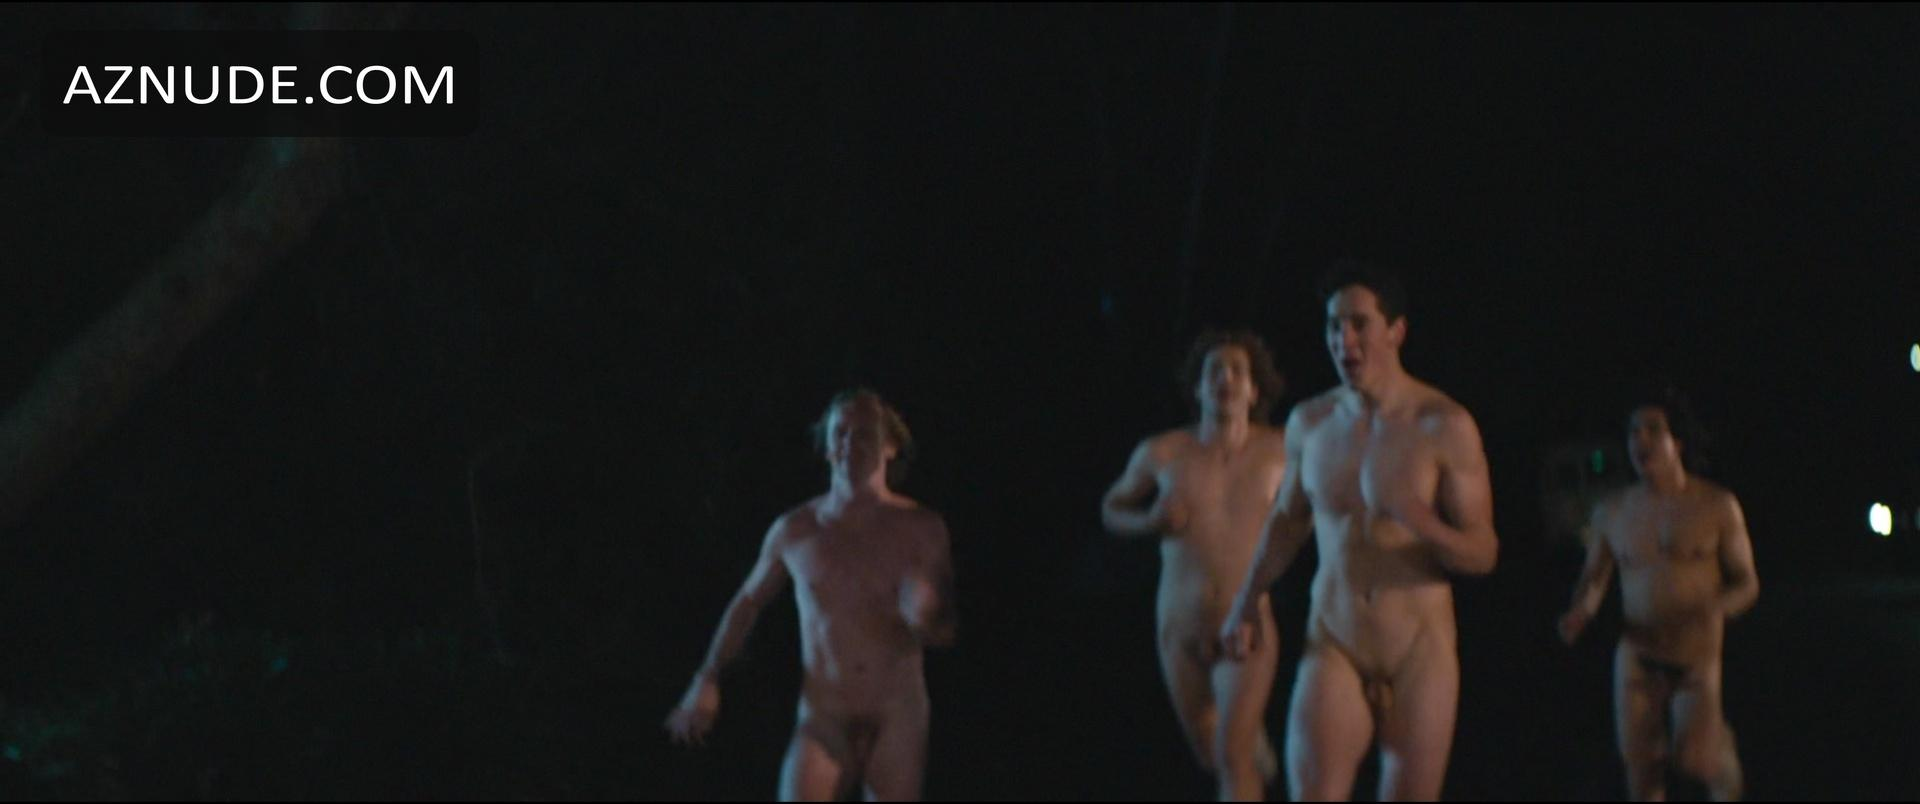 Movies of men holding there dicks and army 3